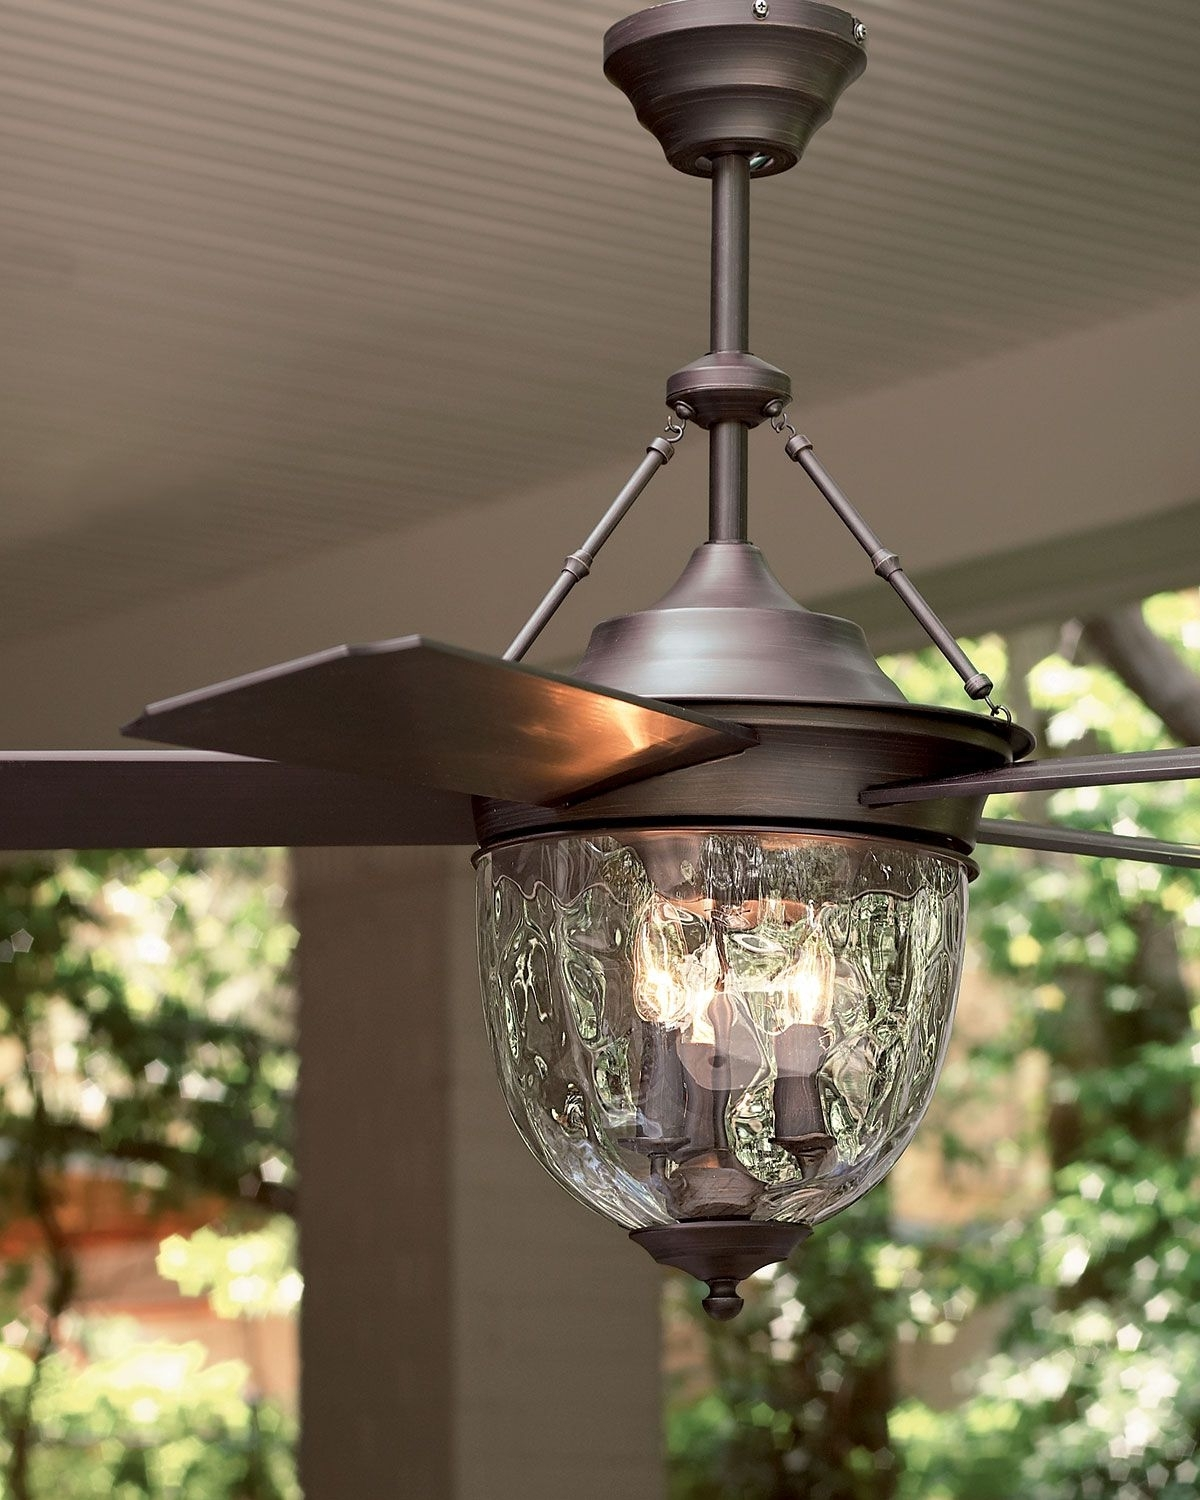 Recent Waterproof Outdoor Ceiling Fans Regarding Dark Aged Bronze Outdoor Ceiling Fan With Lantern (View 19 of 20)